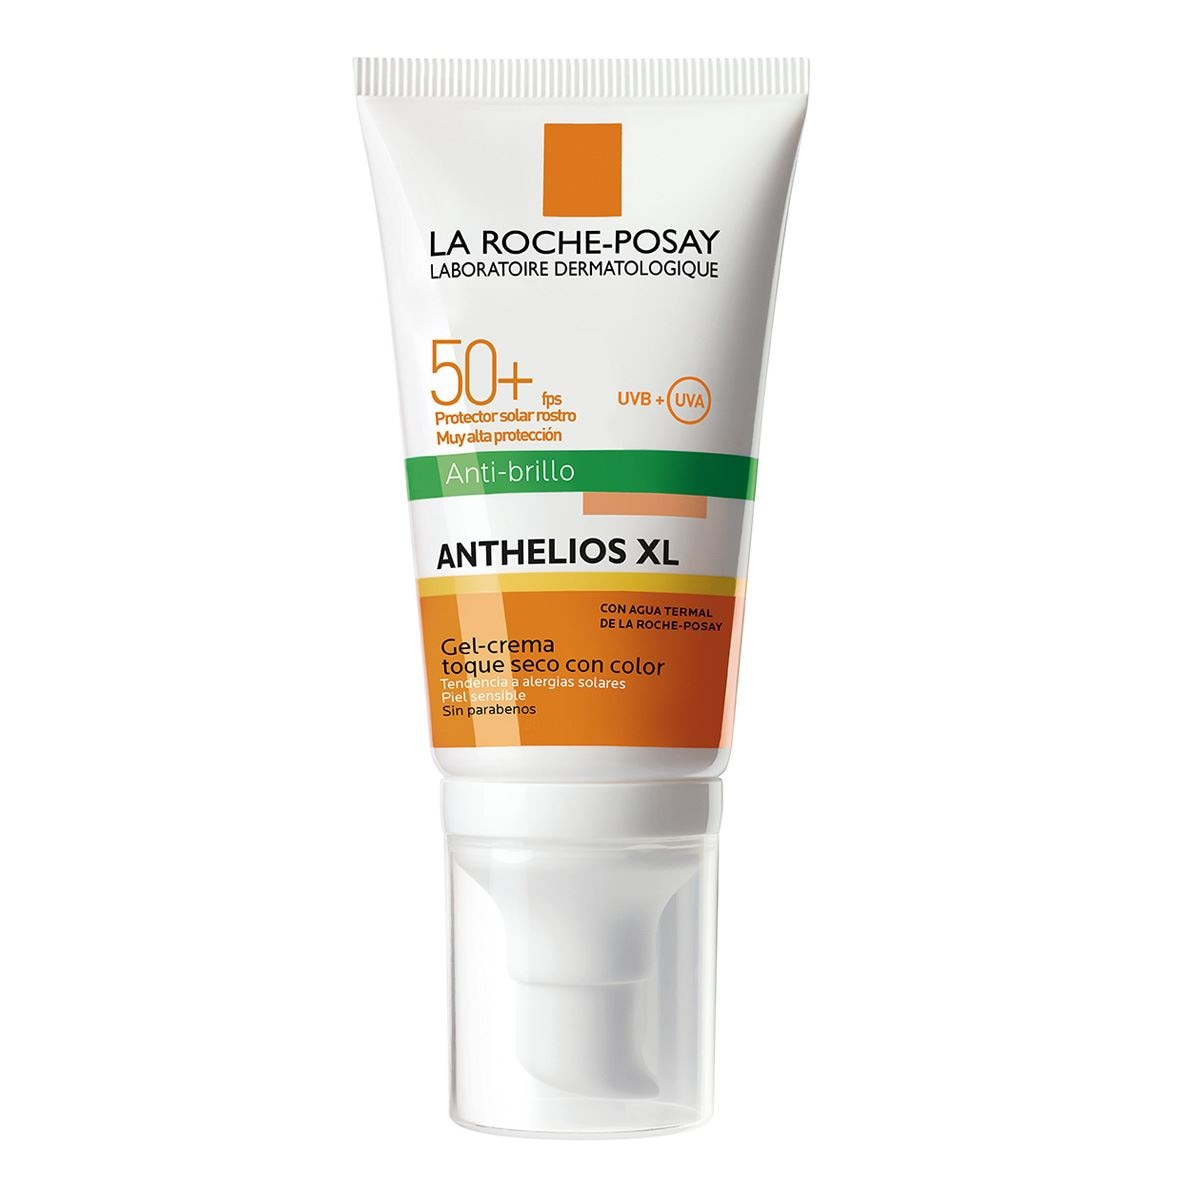 Anthelios xl 50+fps toque seco con color 50ml  - Sanborns